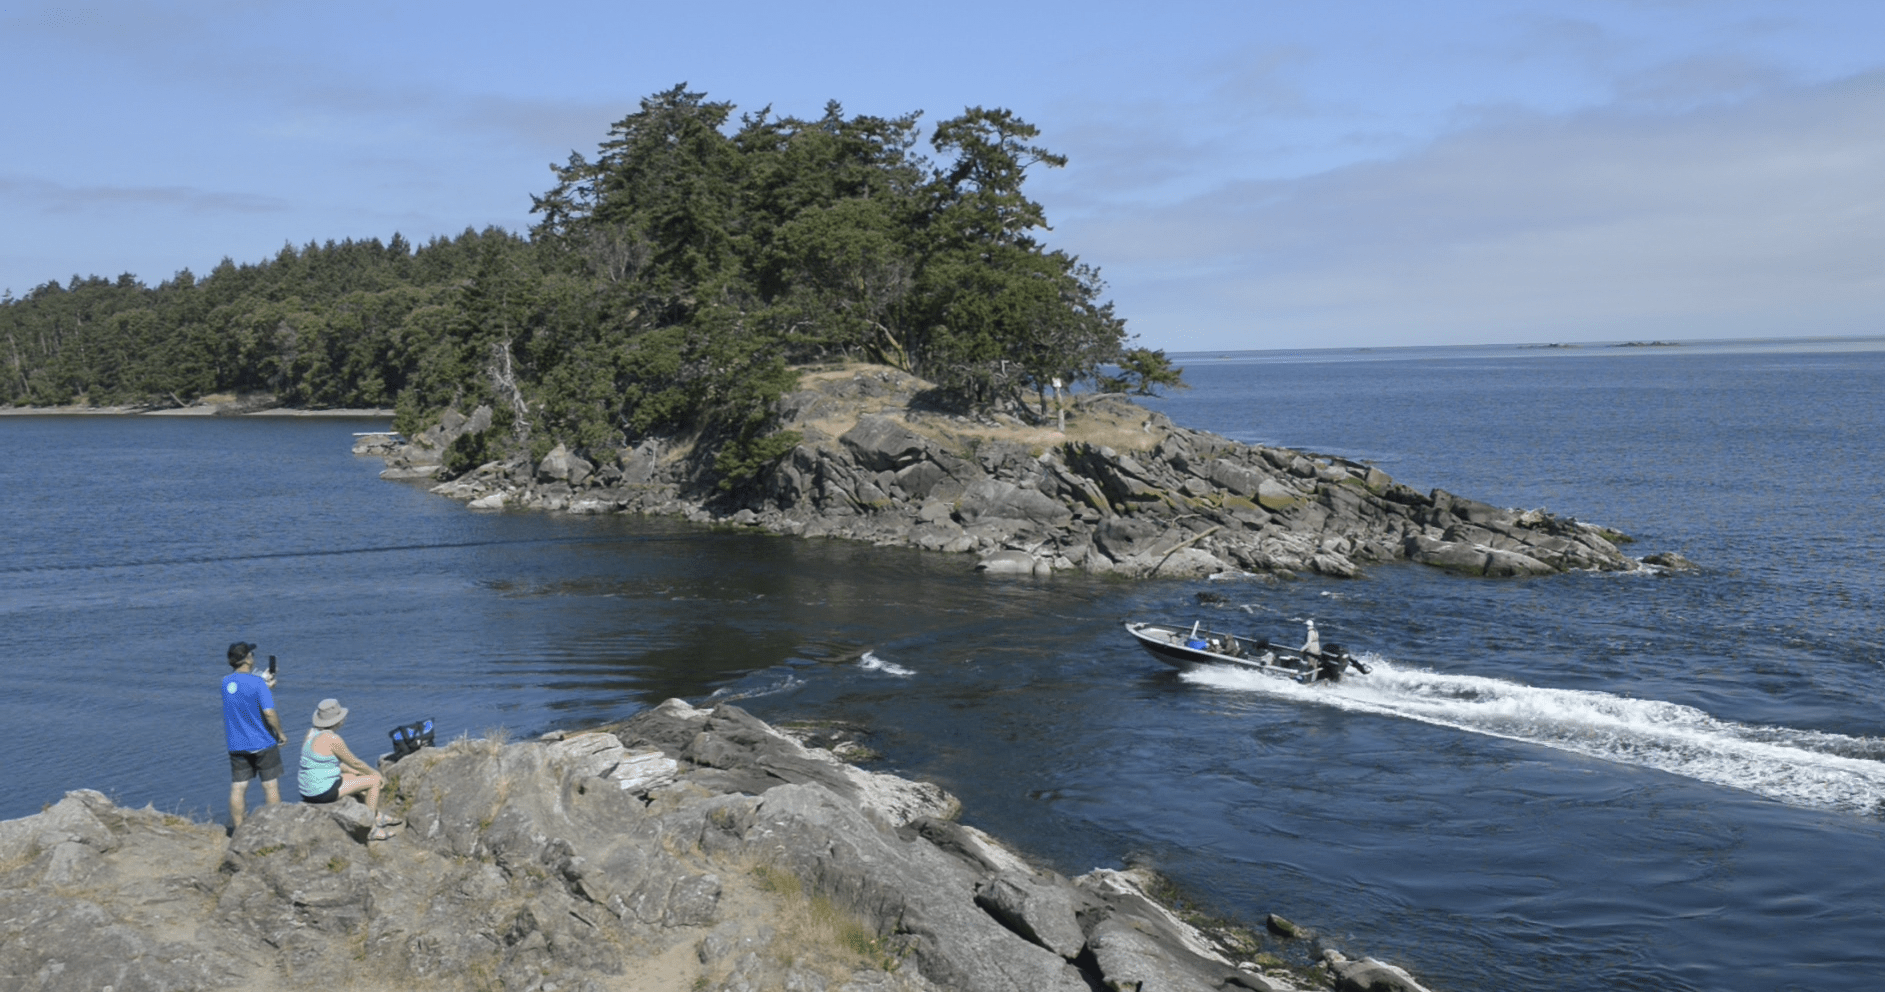 Running a boat through Boat Passage, Saturna Island